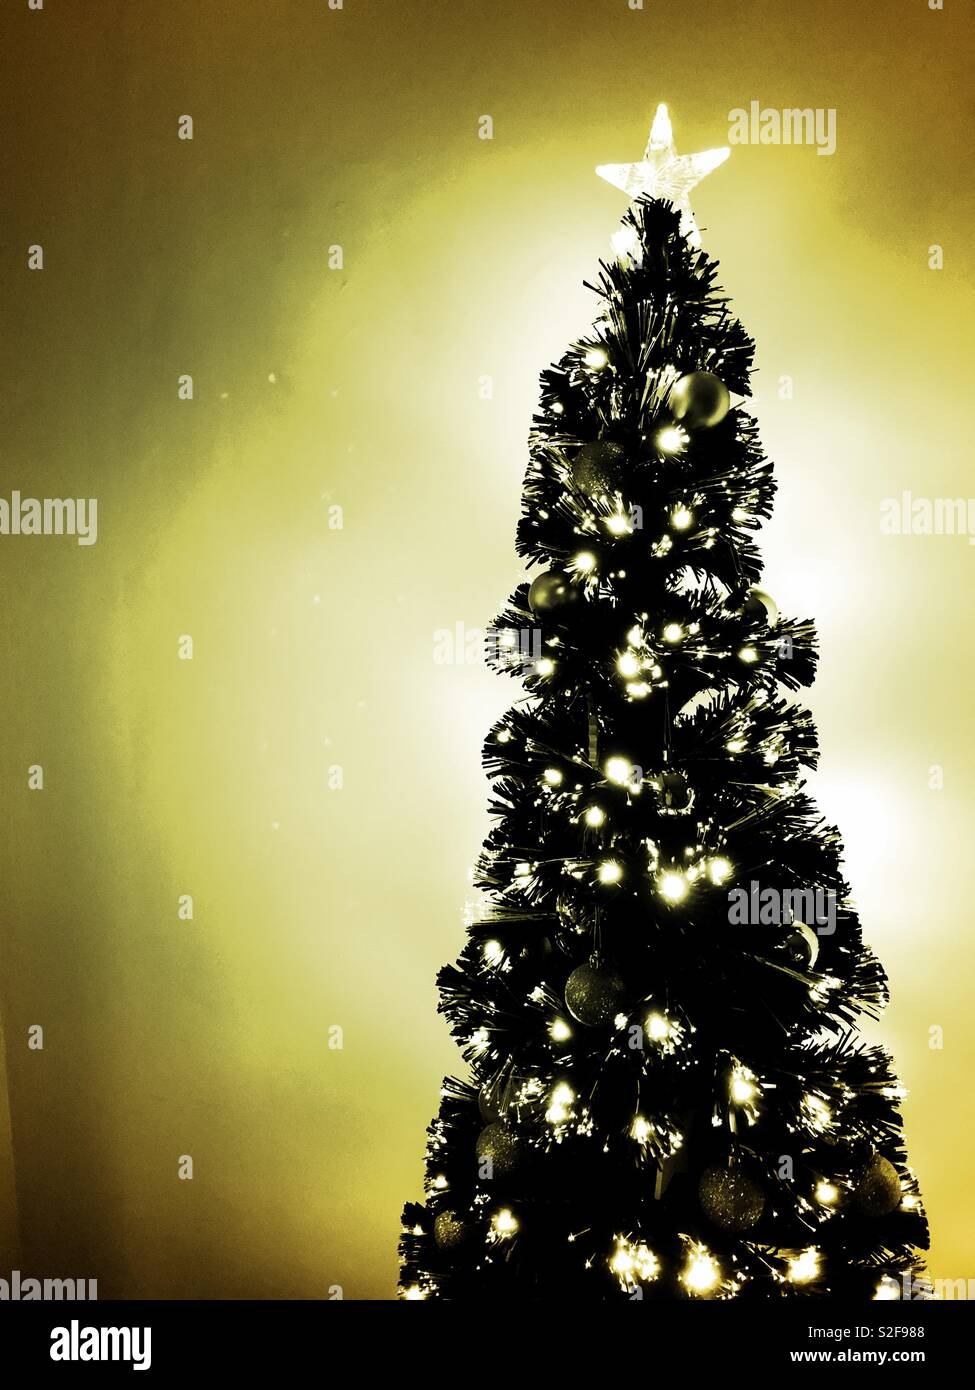 Glowing Black Christmas Tree With Silver Decorations And Golden Glow